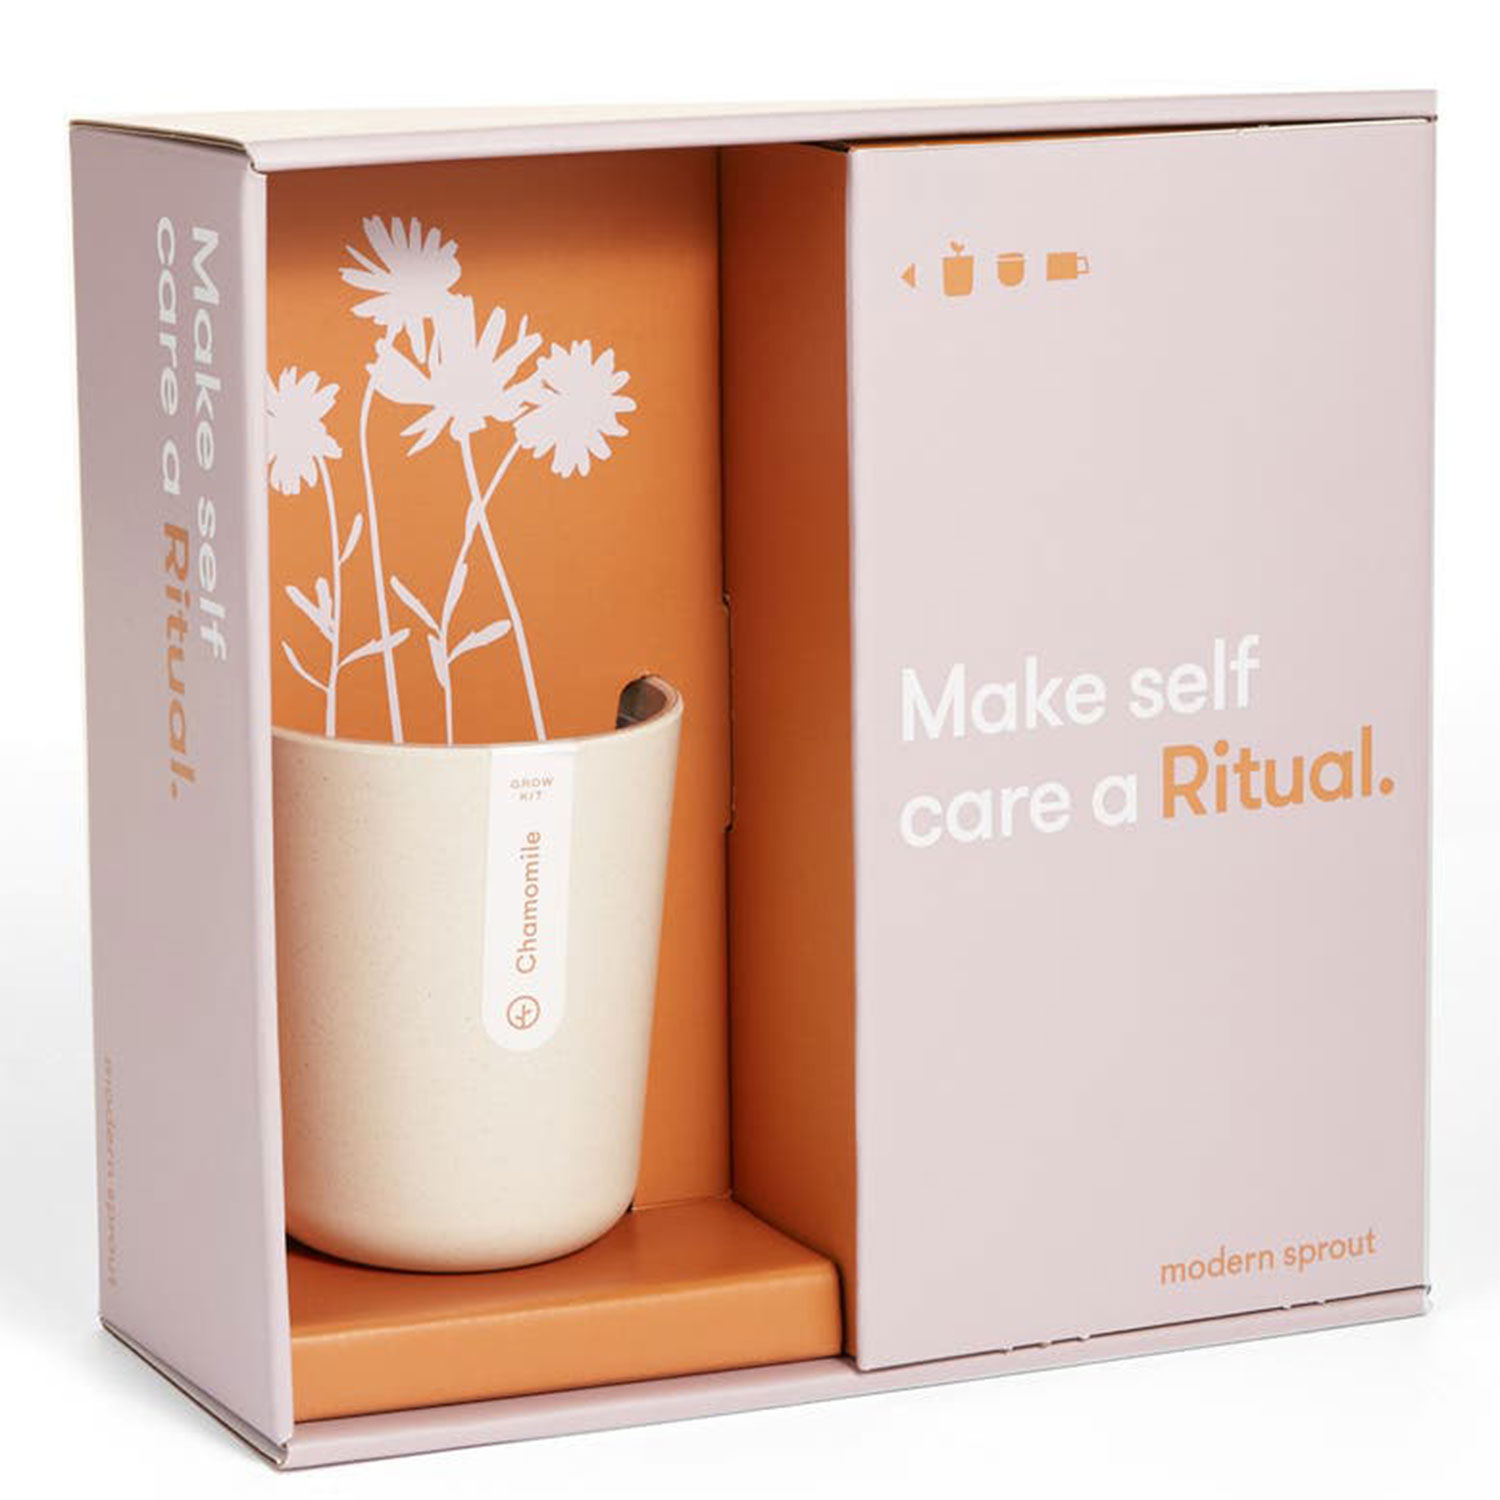 Modern Sprout Live Well Ritual Gift Set